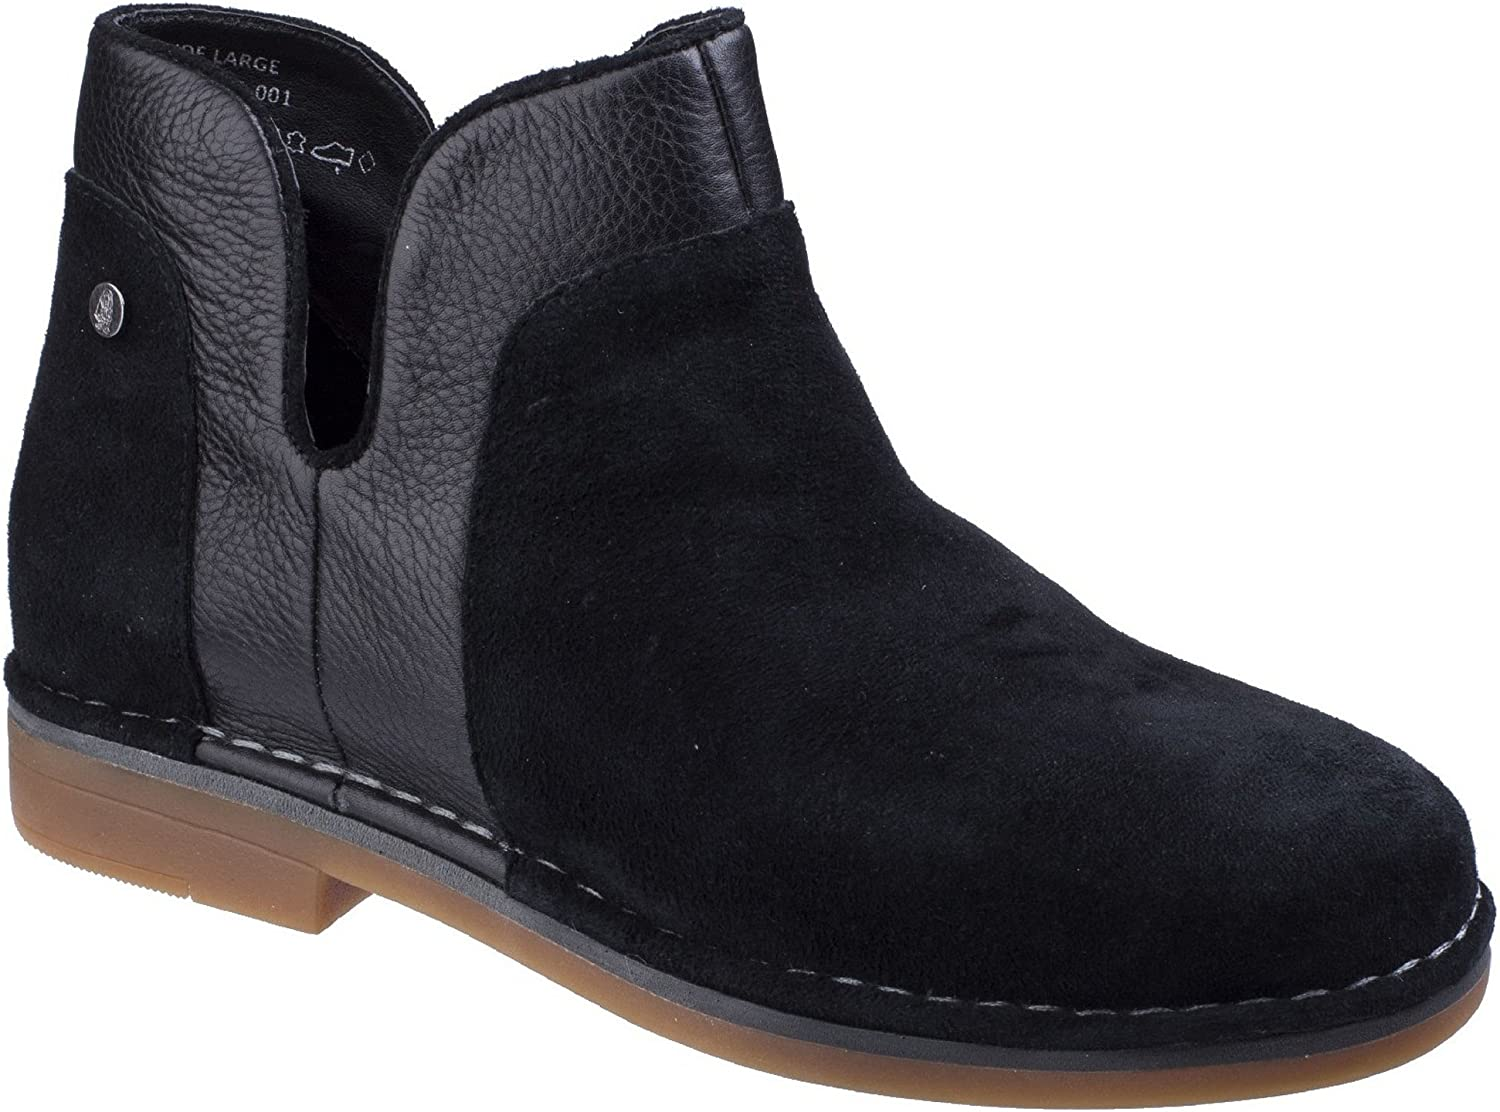 Hush Puppies Womens Ladies Claudie Catelyn Ankle Boots